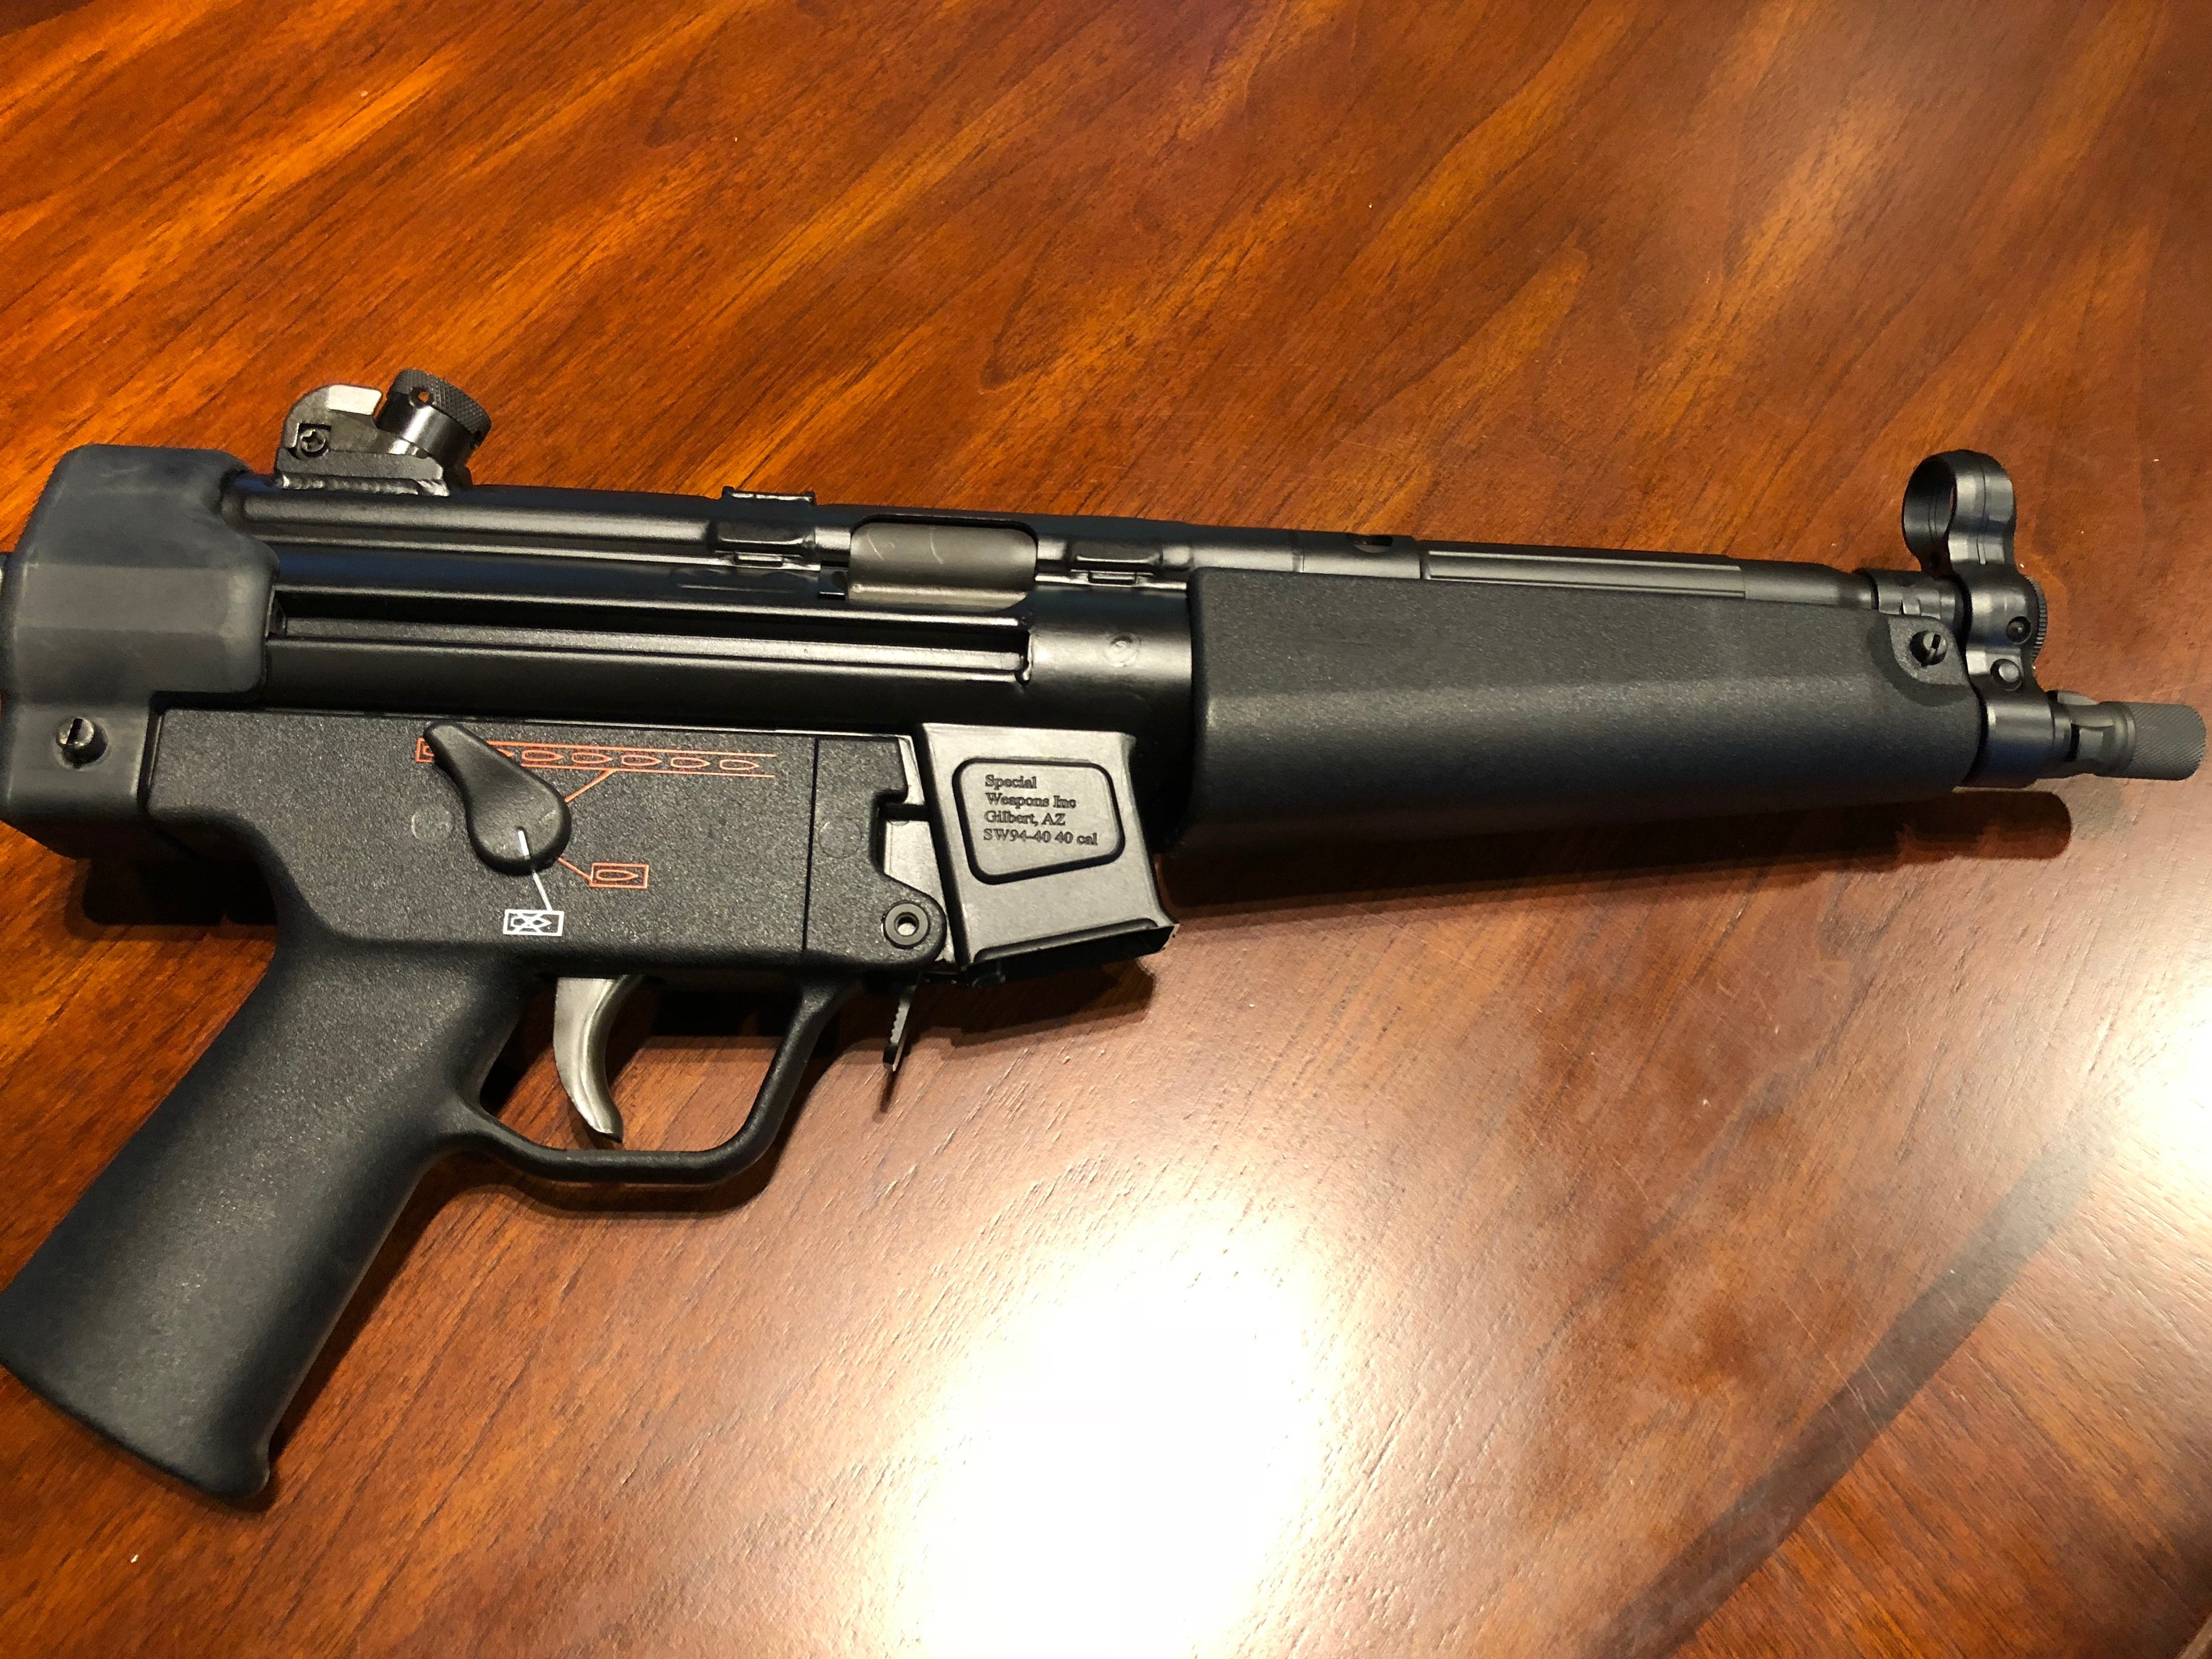 WTS: MP5/40 by Investment Grade Firearms-img_1925.jpg